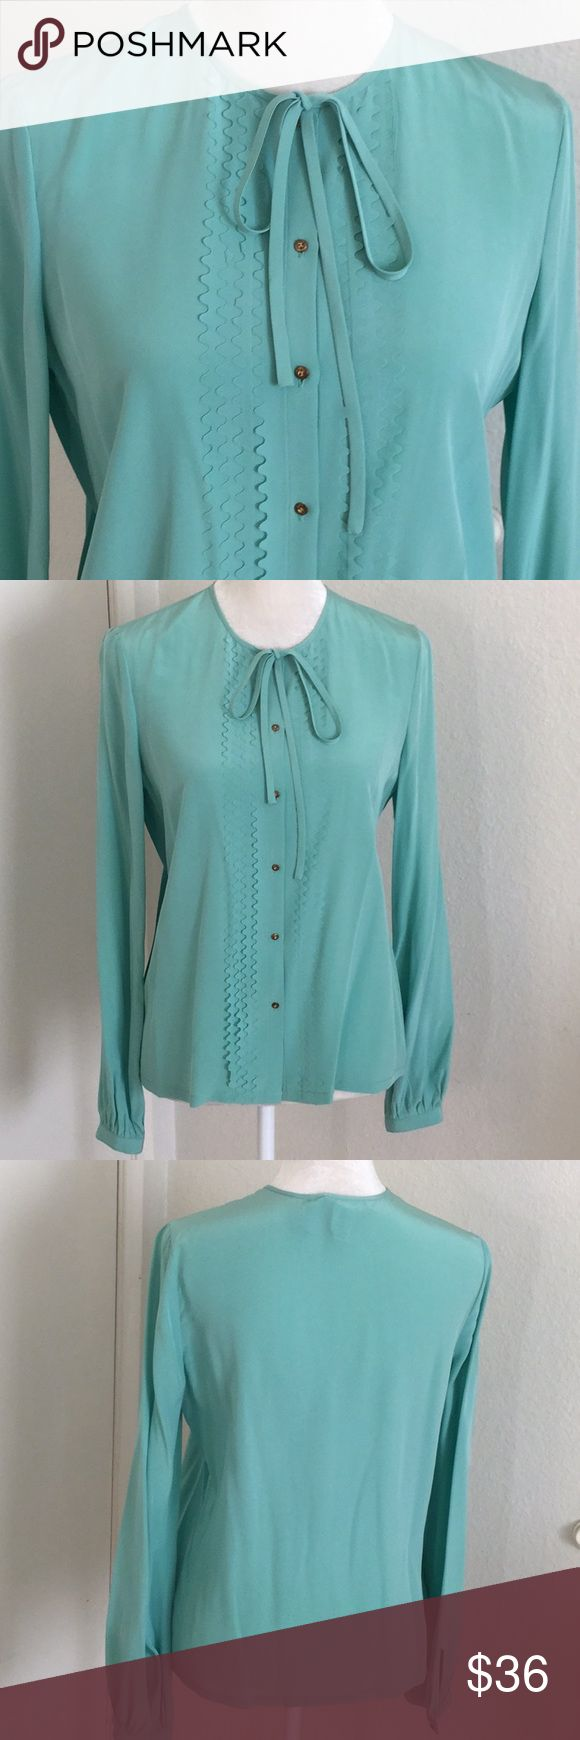 Diane Von Furstenberg Silk Mint Blouse Timeless and Feminine  100% Silk Stain Bottom Hem in the Black  (please look at picture) Price Reflect due to this Overall no other Flaws, Excellent Condition   Been Dry Cleaned Diane Von Furstenberg Tops Blouses